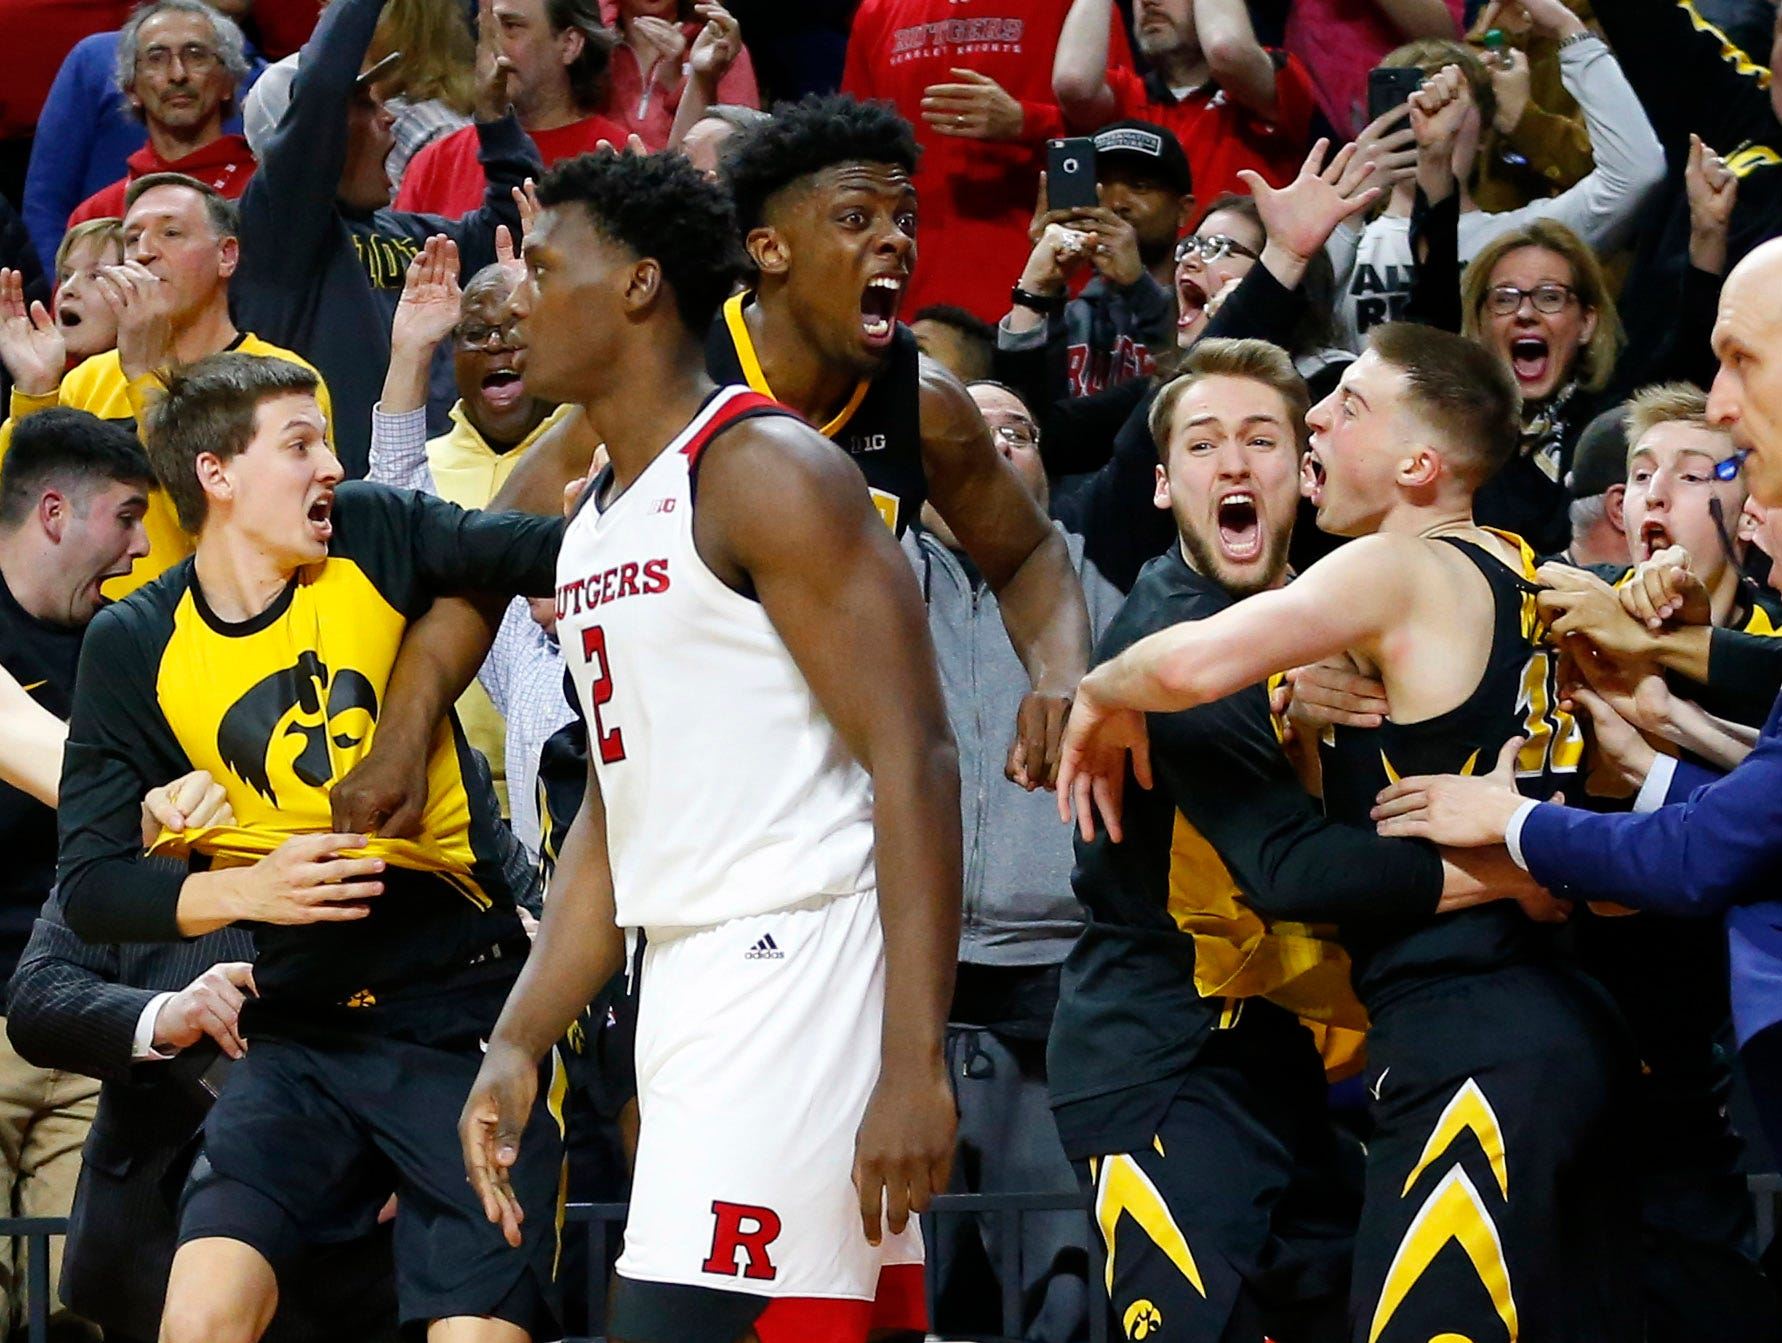 The Iowa Hawkeyes celebrate with Joe Wieskamp after defeating the Rutgers Scarlet Knights 71-69  at Rutgers Athletic Center (RAC). Mandatory Credit: Noah K. Murray-USA TODAY Sports